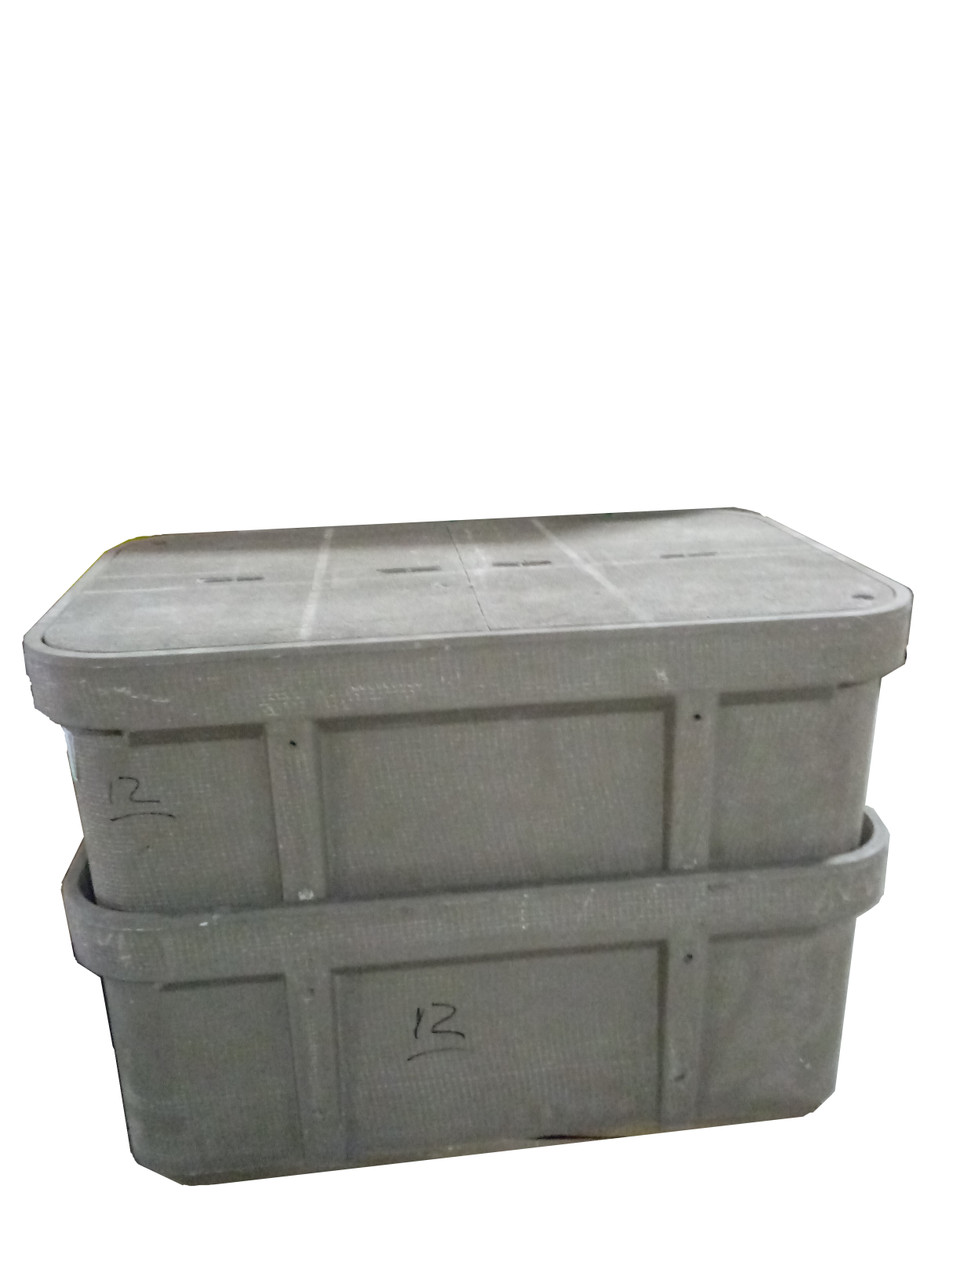 Quazite Enclosure, Box, Polymer Concrete, GA DOT, 30x48x18